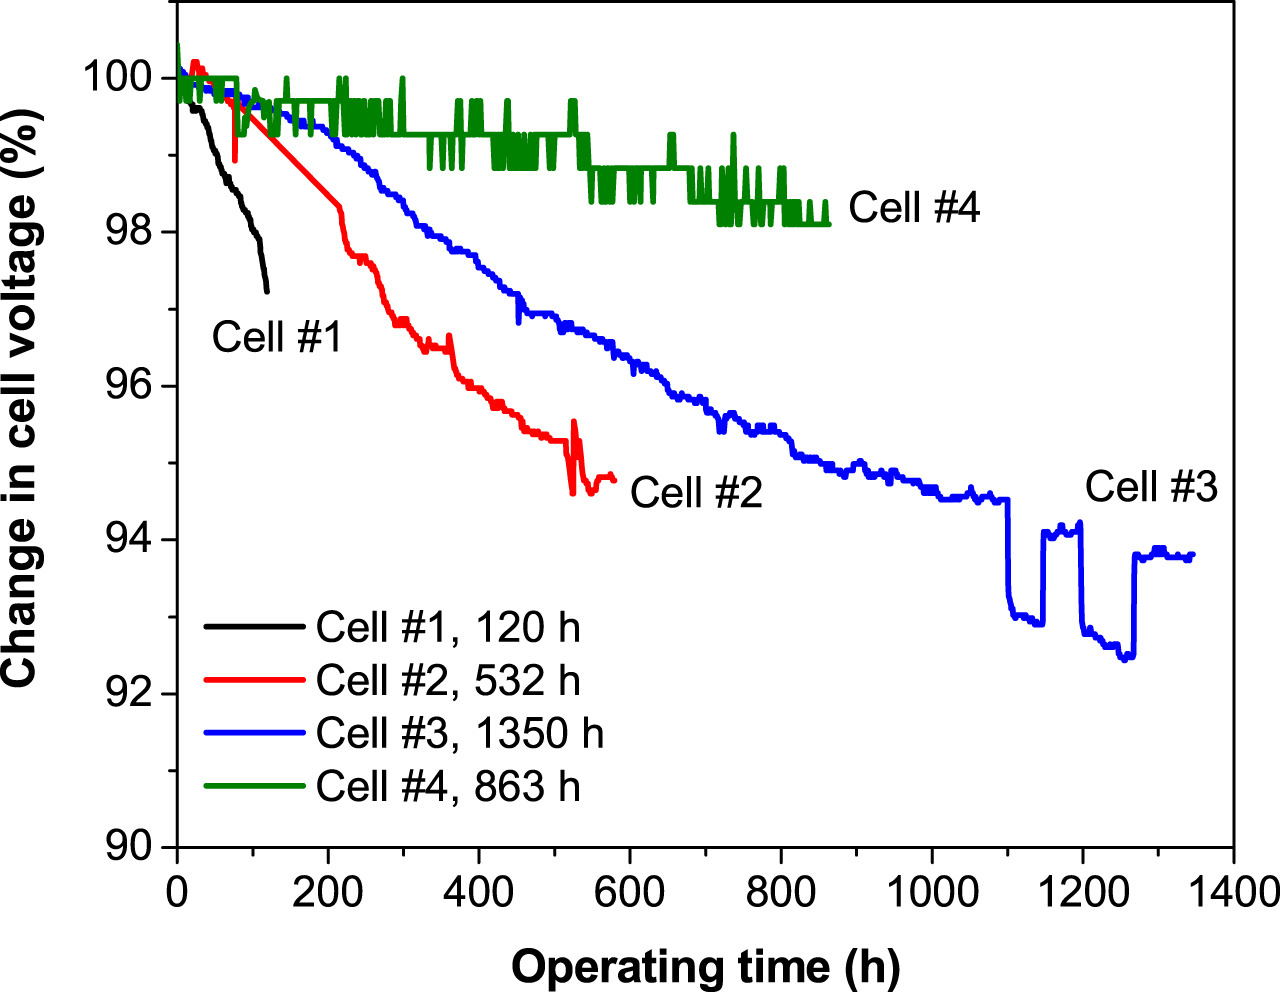 The normalized cell voltage